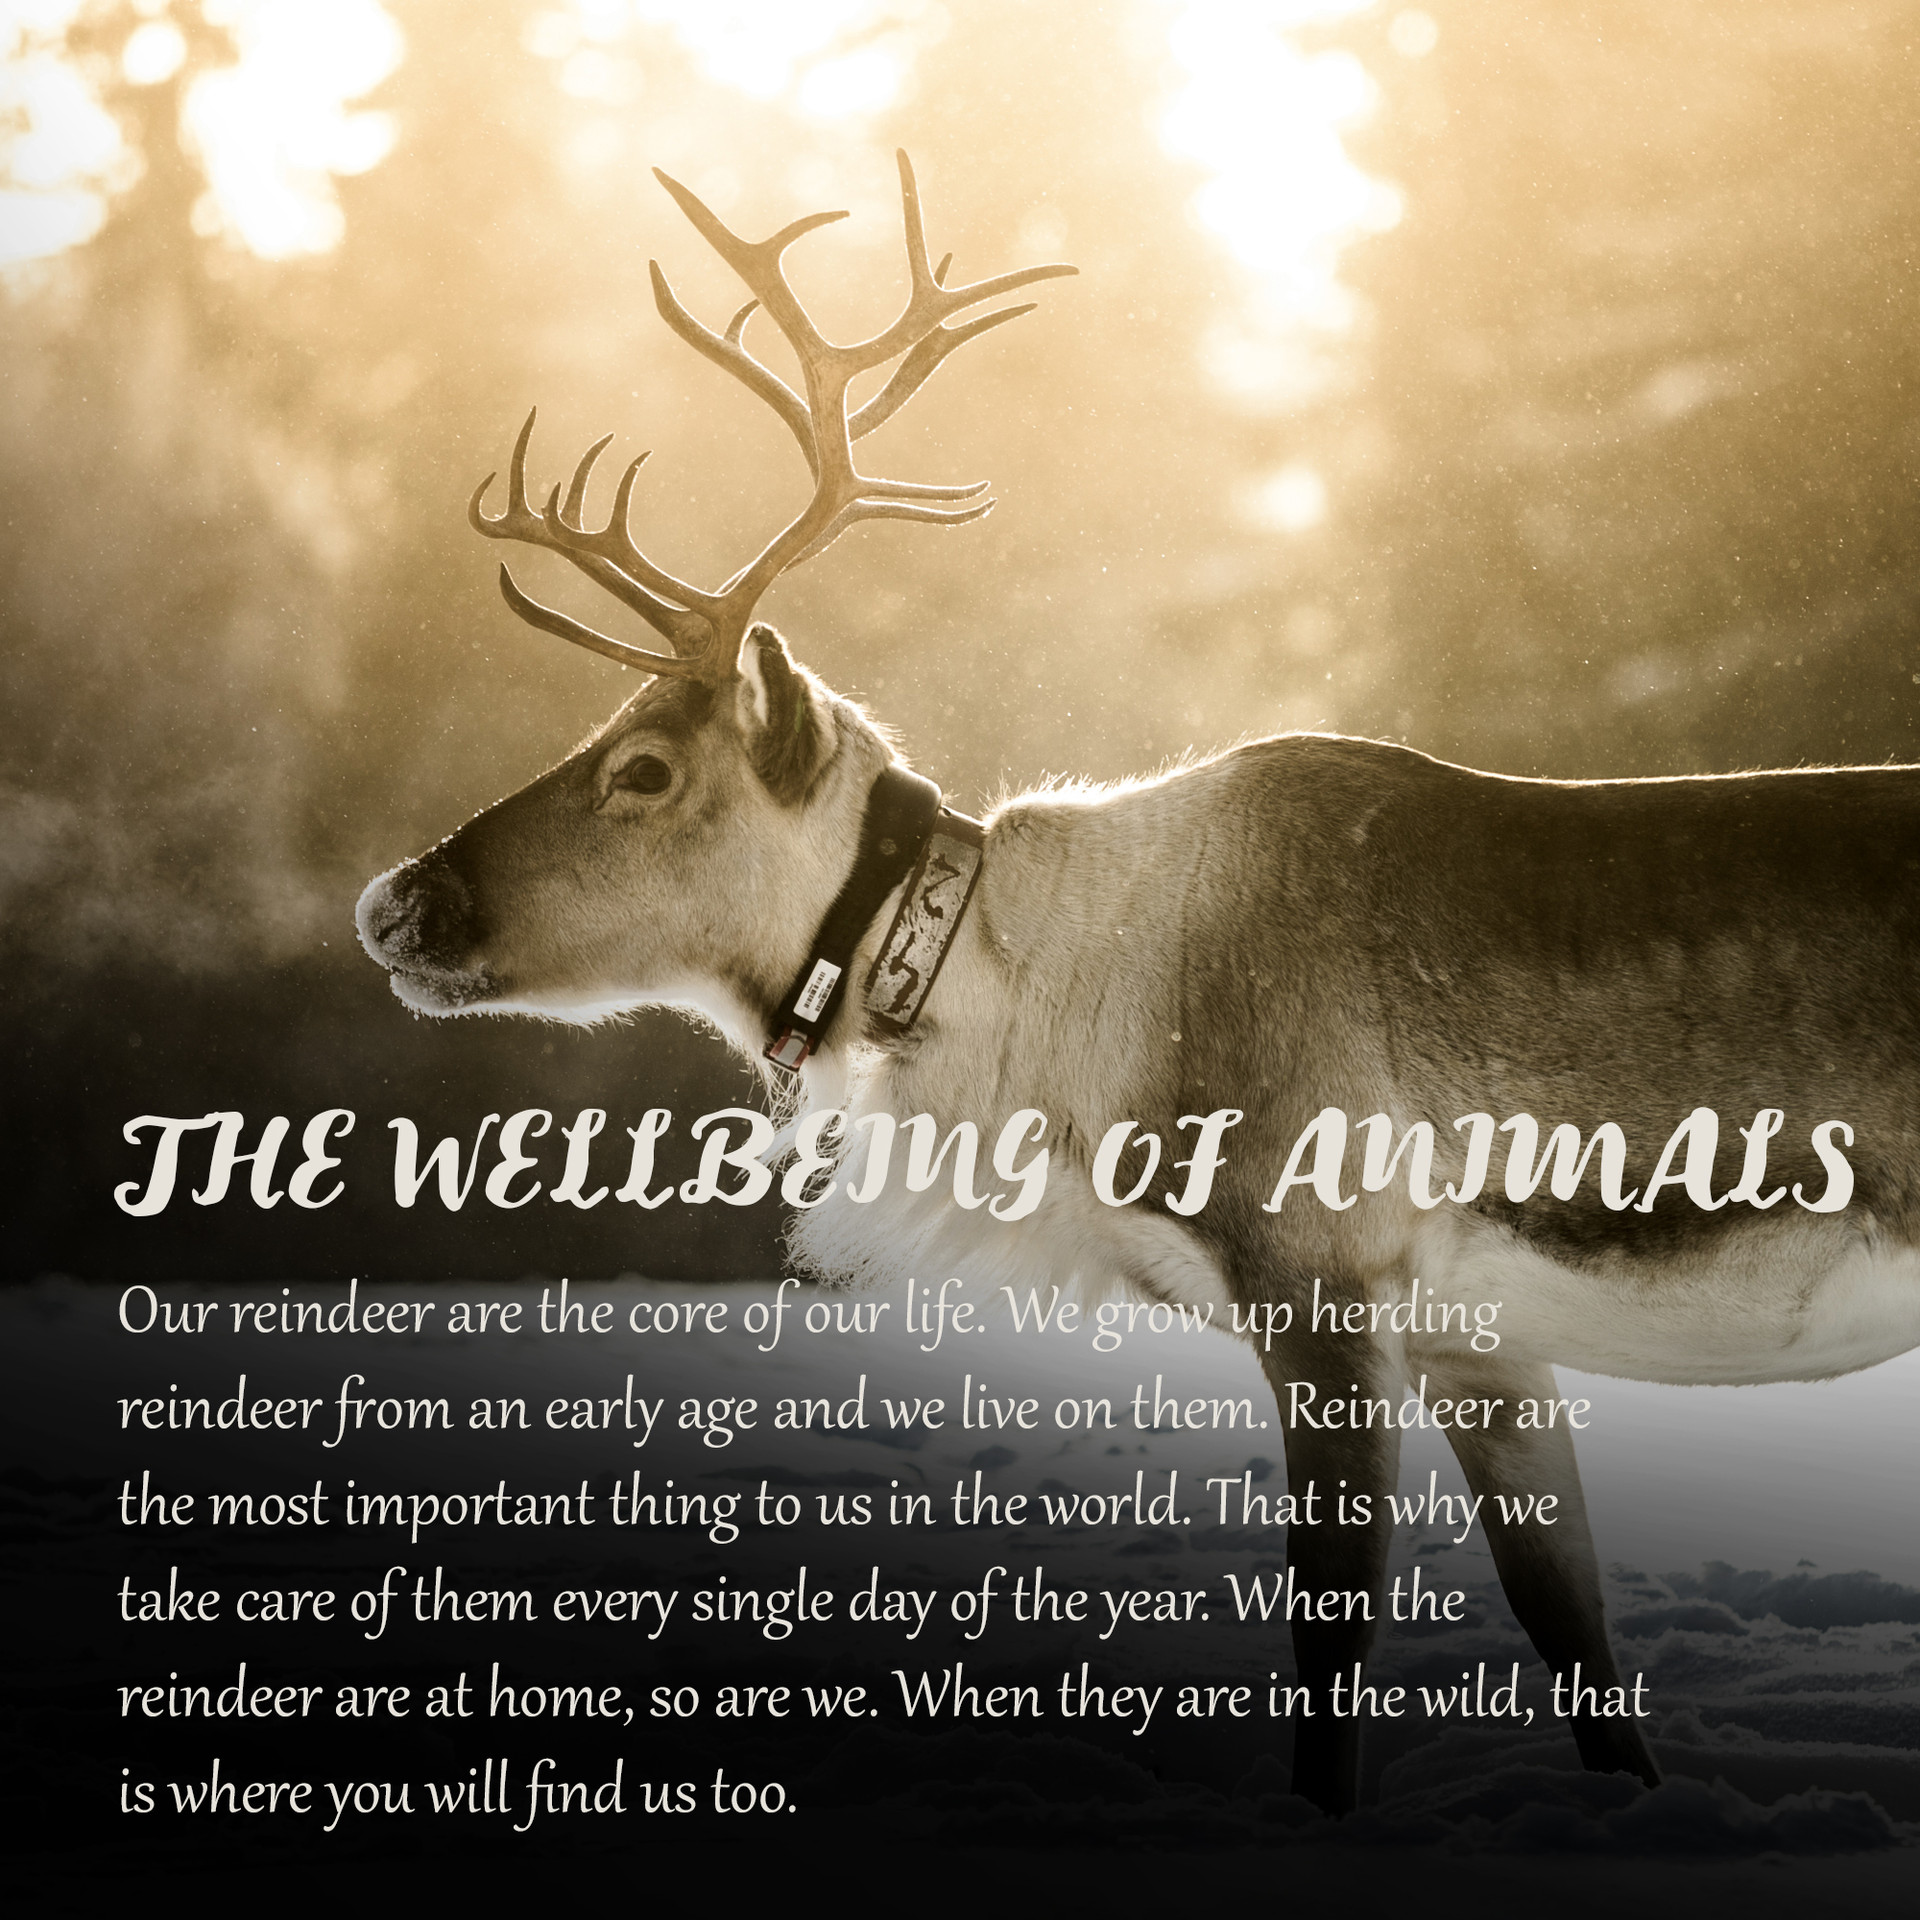 WELLBEING OF ANIMALS